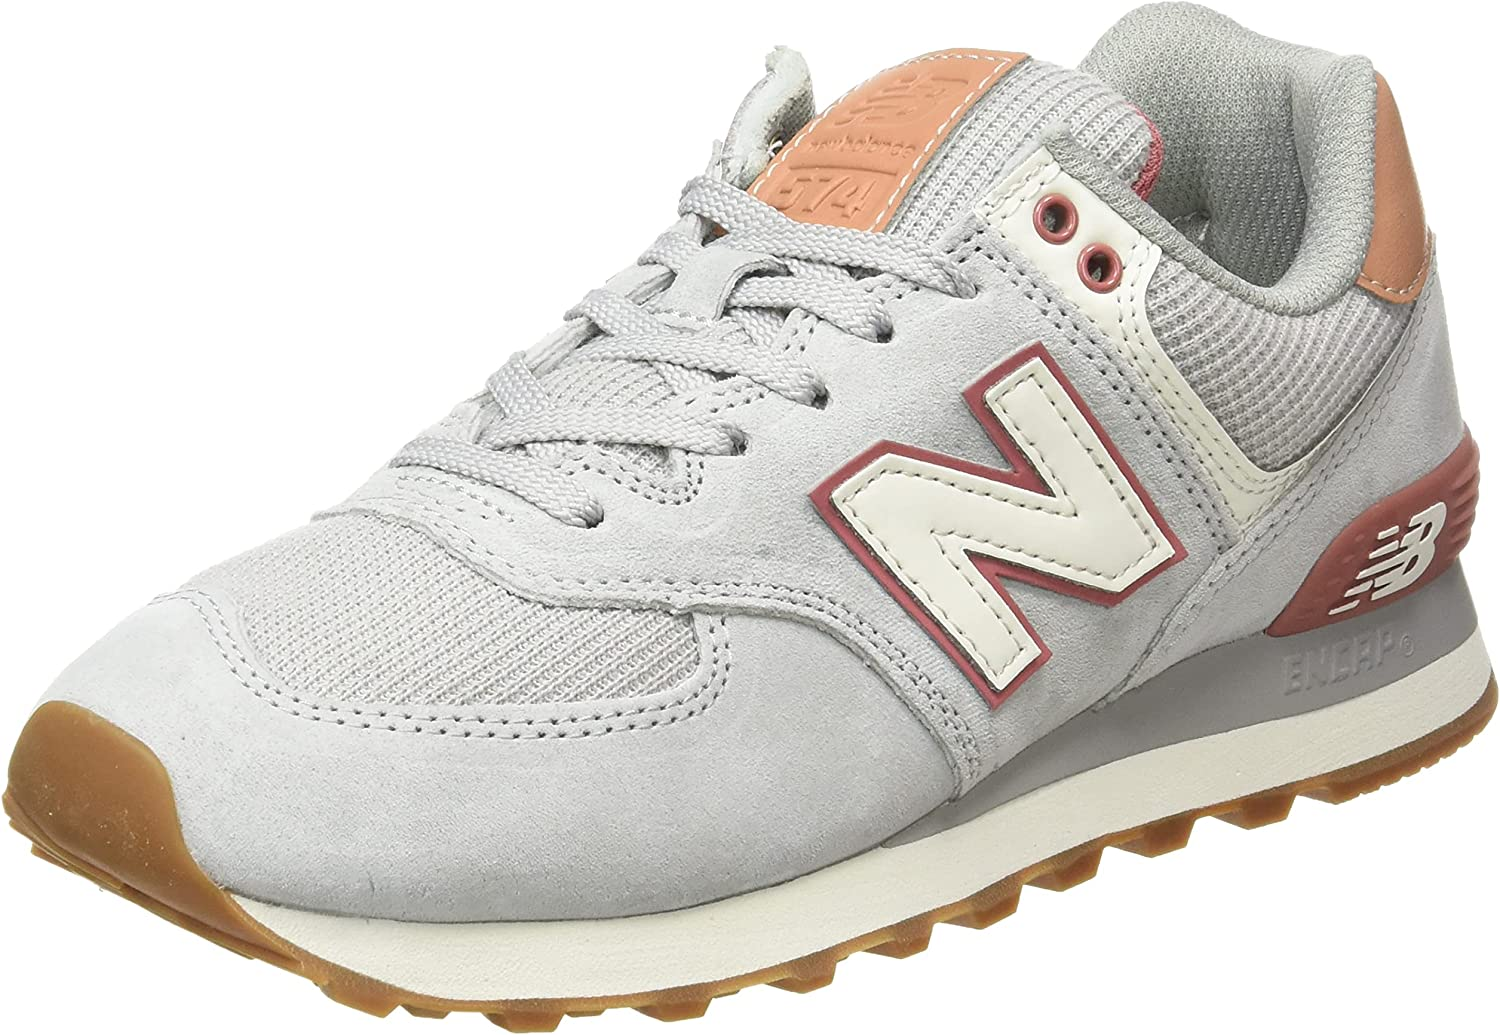 New Balance Women's Max 57% OFF Limited time trial price Sneaker OS